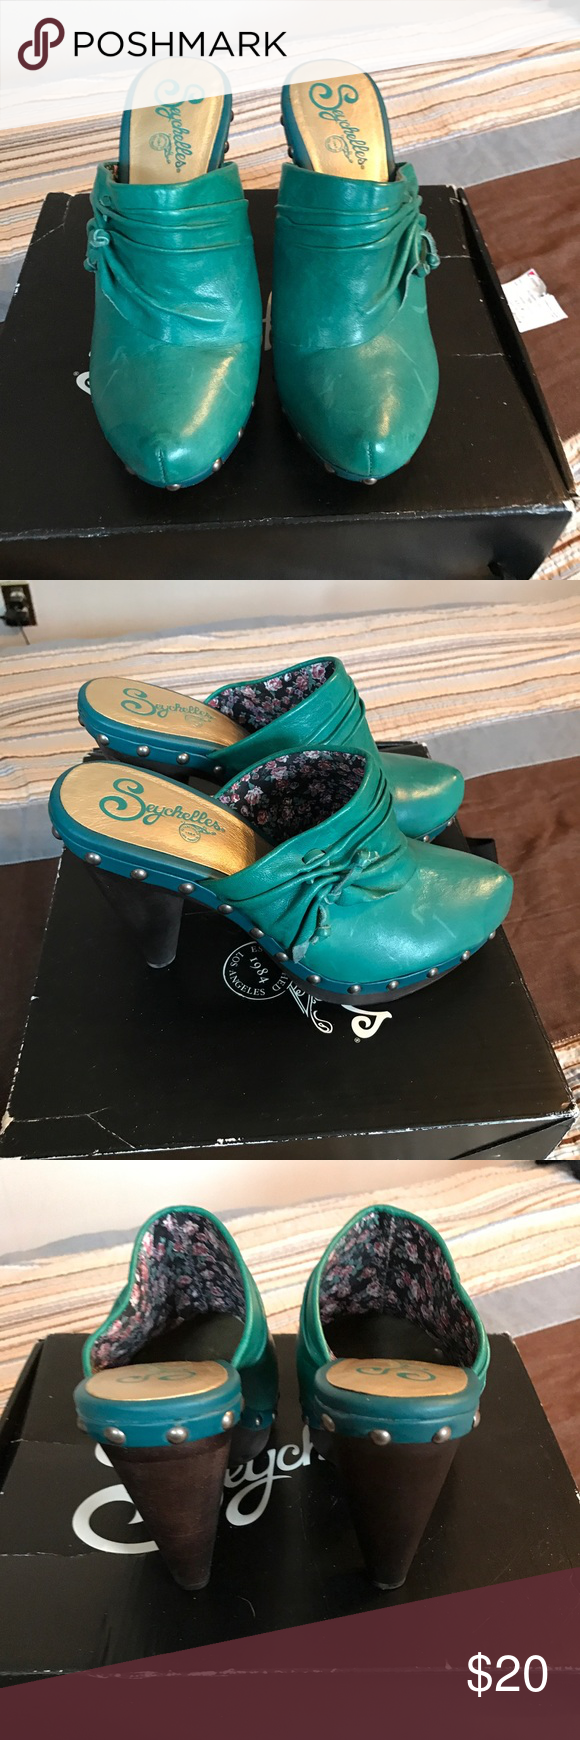 Teal Clogs Leather slip on clogs only worn once in good condition and comes with the original box Seychelles Shoes Mules & Clogs